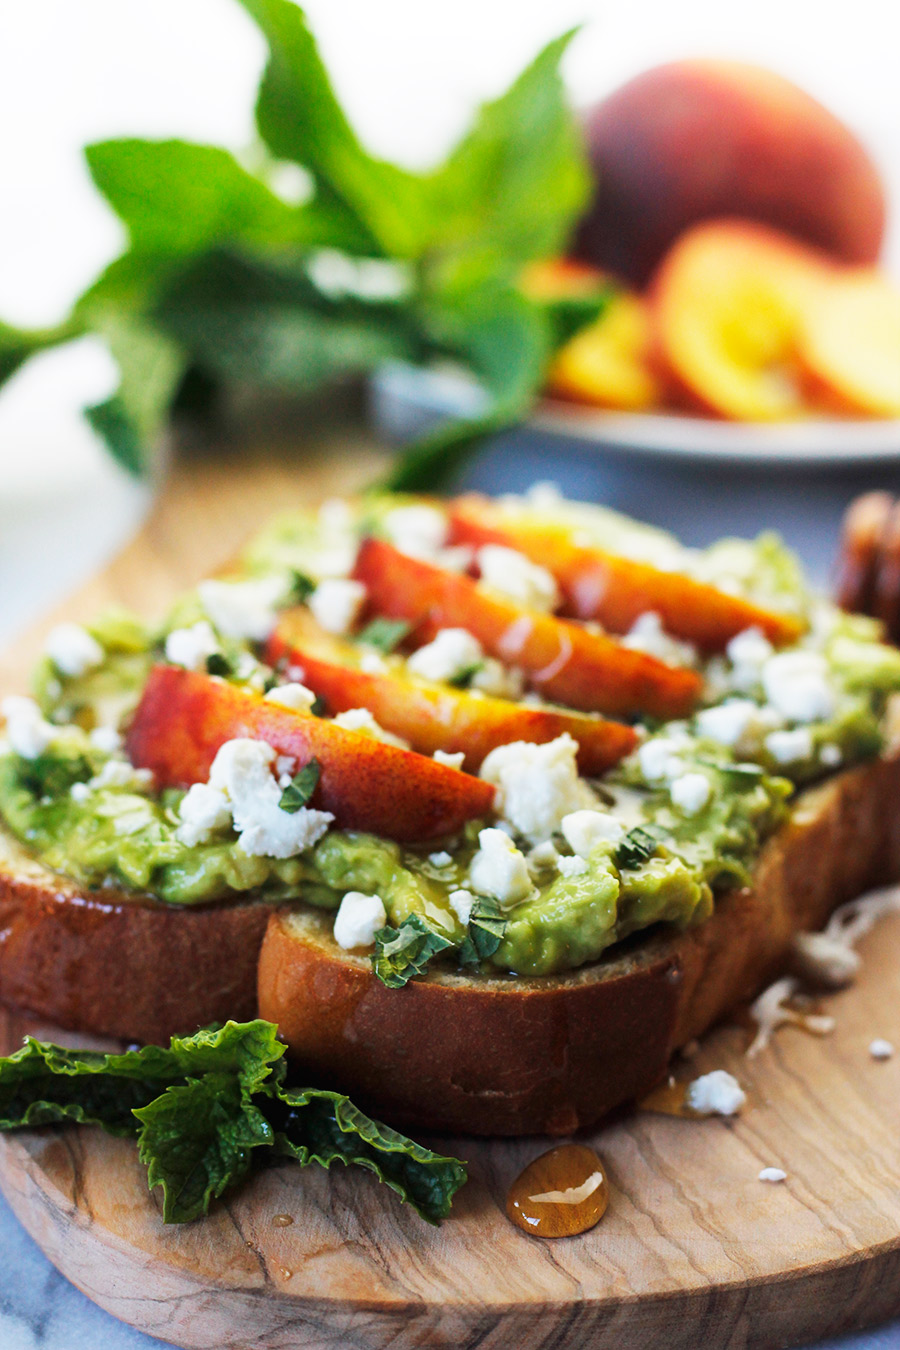 Avocado toast topped with sliced peaches, sprinkled with goat cheese, fresh torn mint leaves and drizzled with honey